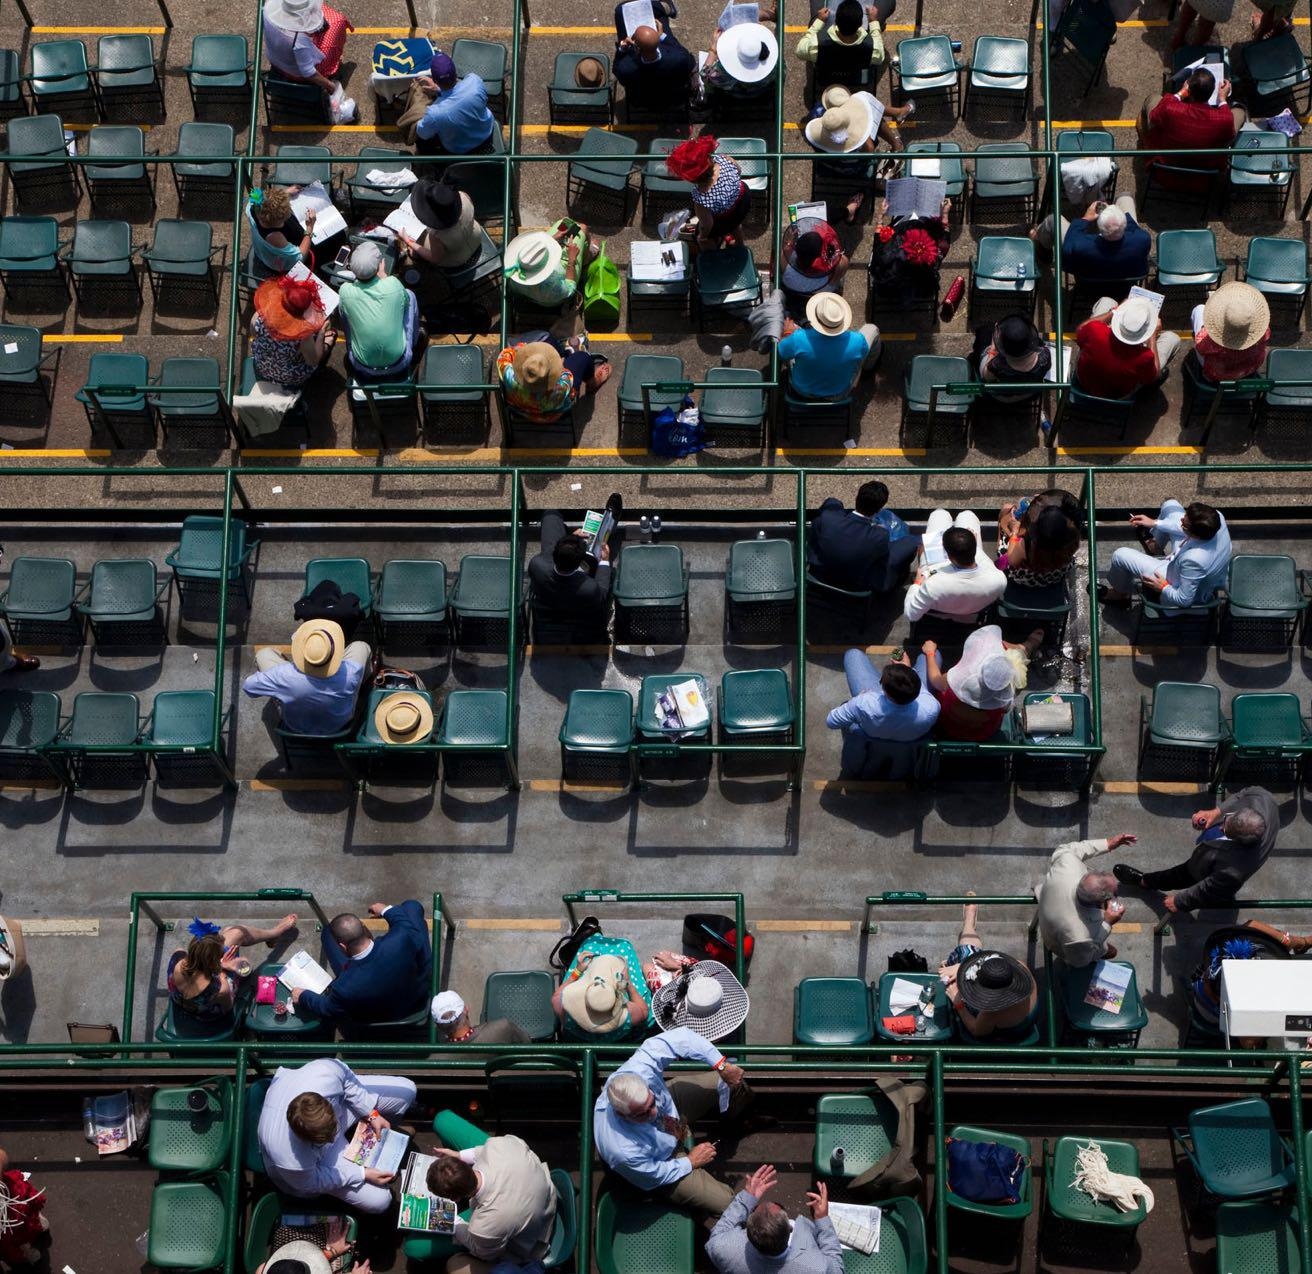 Overhead shot of people sitting in chairs at a derby.